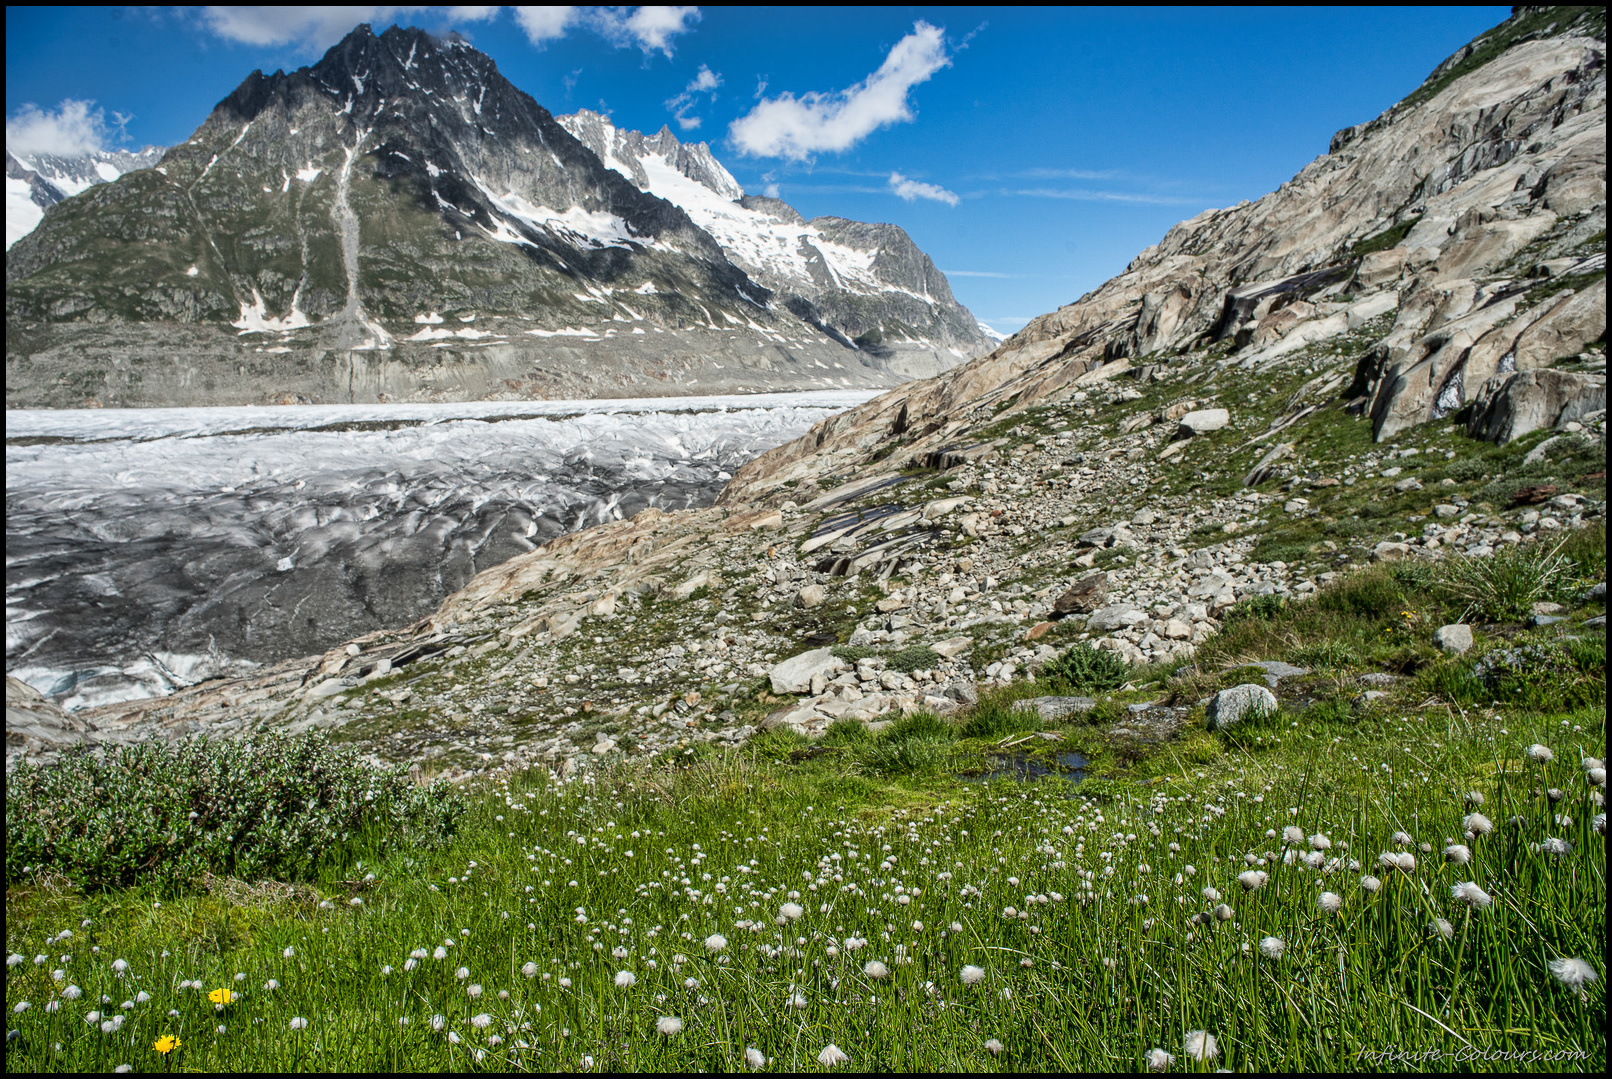 Patches of cotton grass surround the beautiful Märjelensee